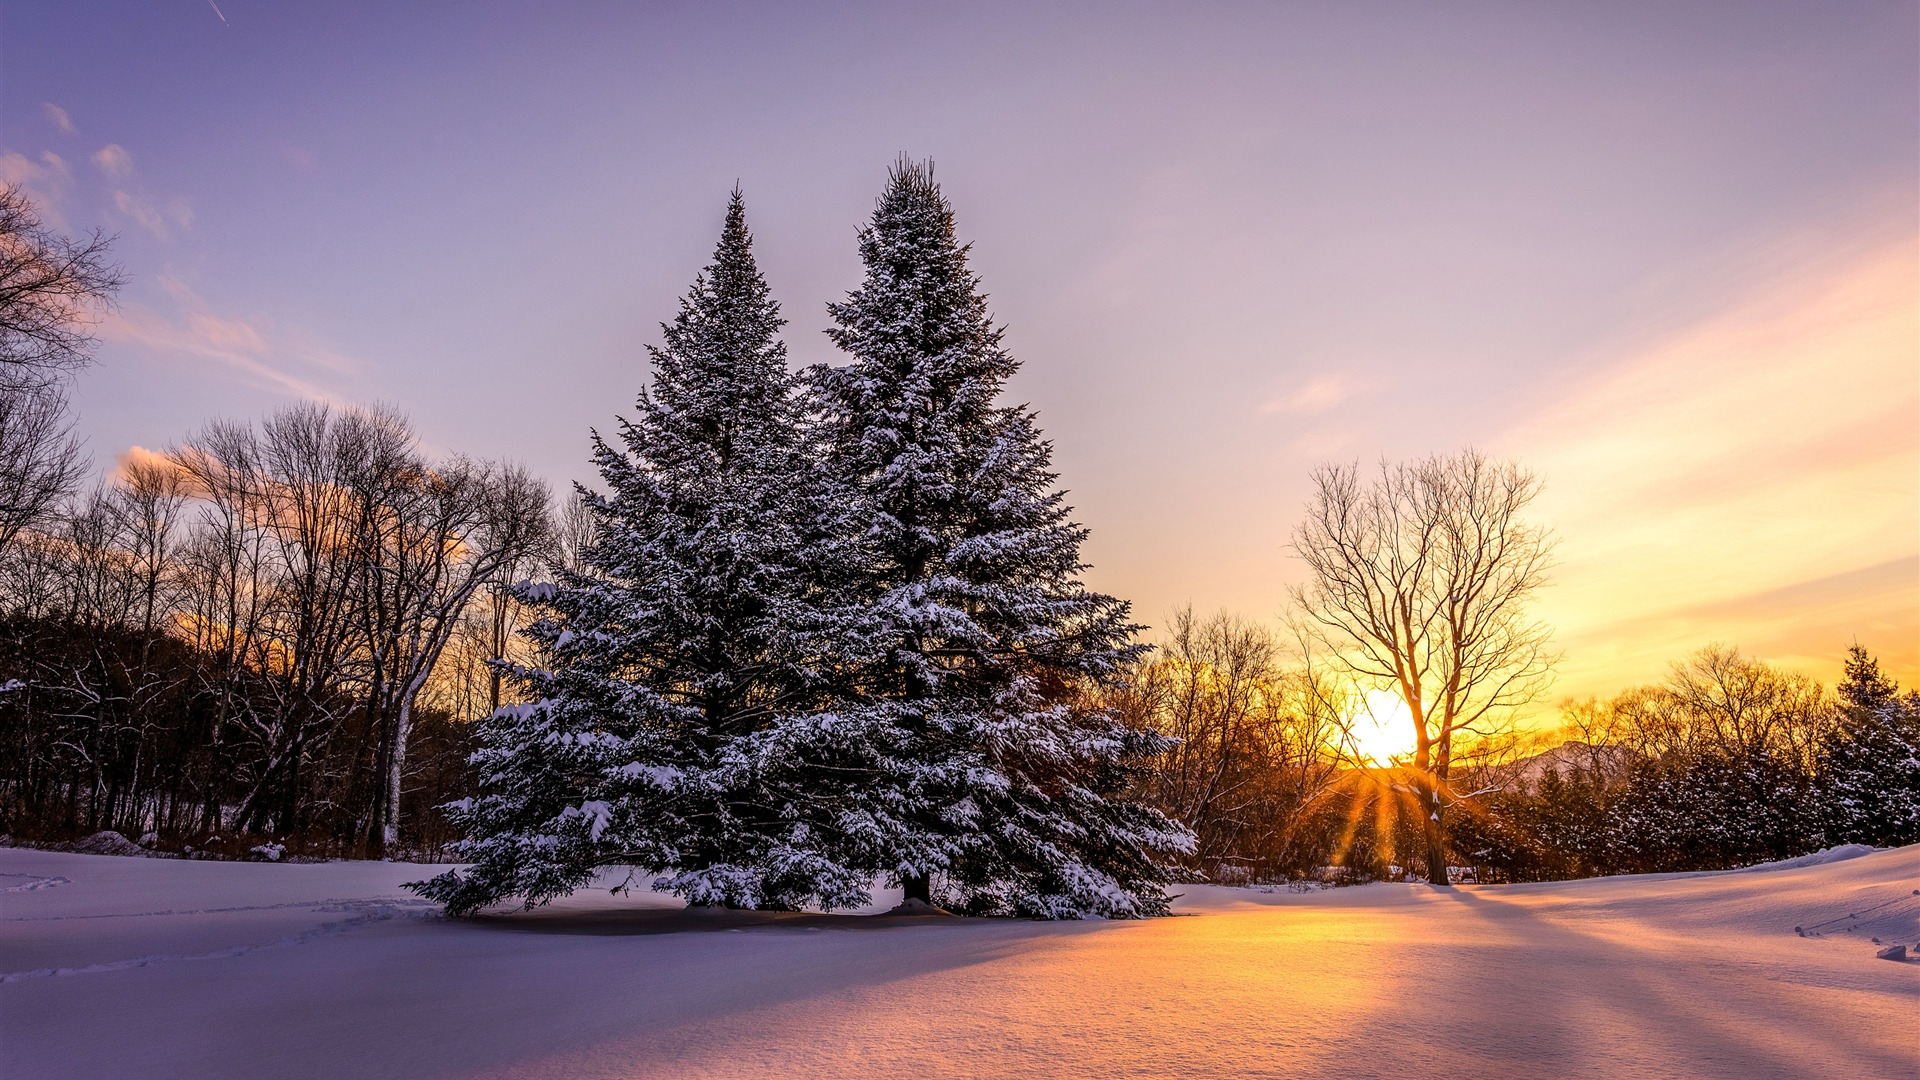 Winter Trees Sunset Photo Wallpaper 1920x1080